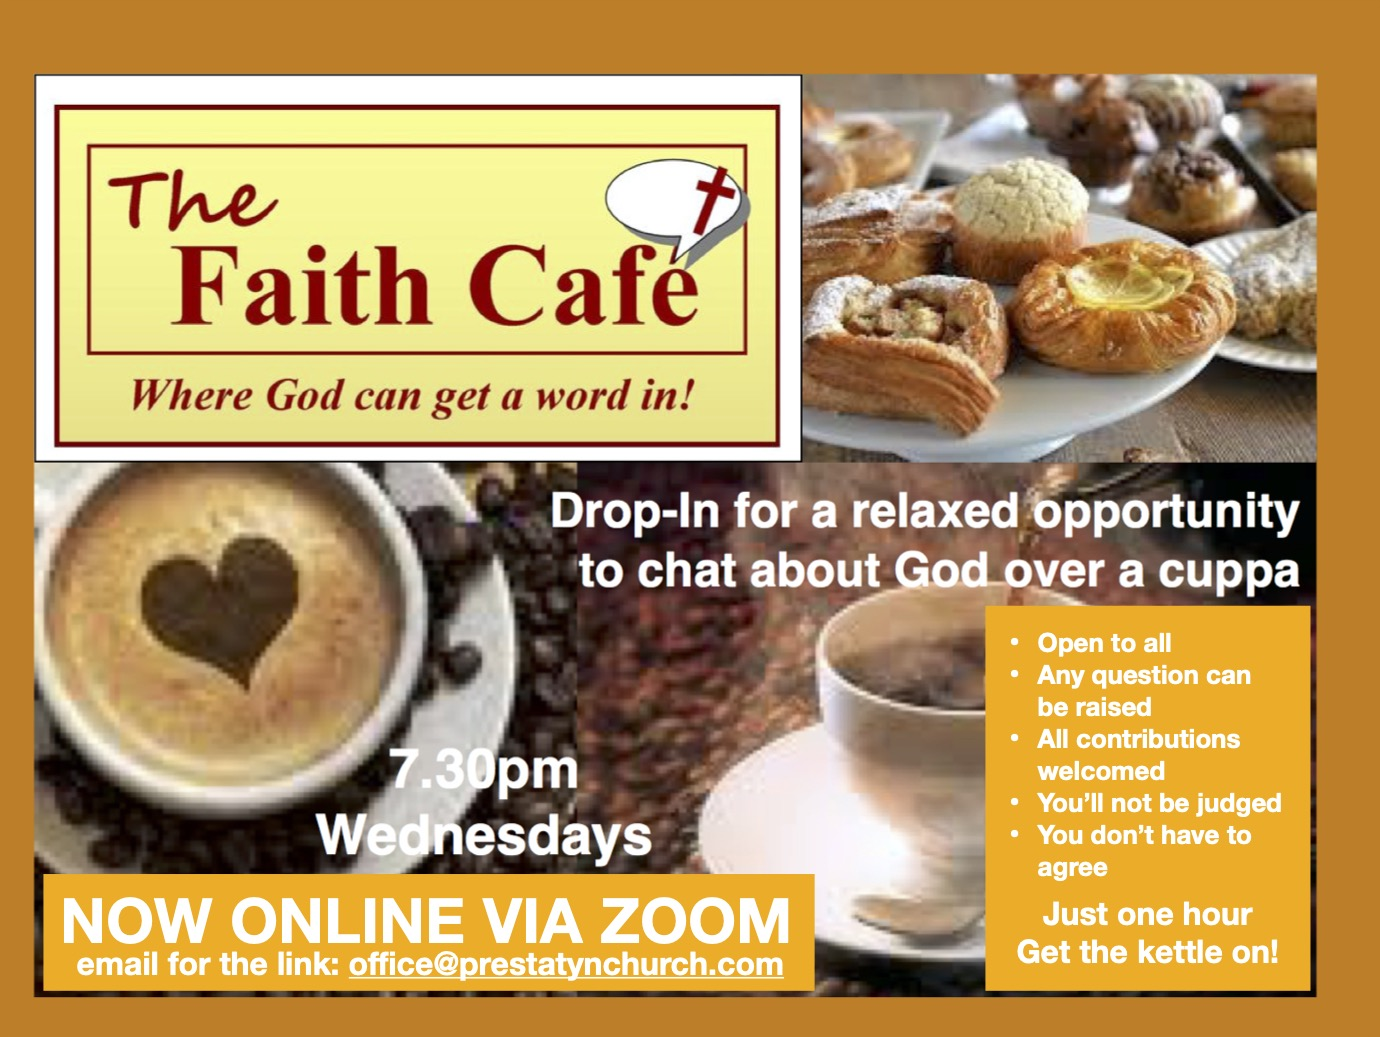 """Text Reads: """"The Faith Café. Where God can get a word in!  Drop-In for a relaxed opportunity to chat about God over a cuppa.  Open to all, Any question can be raised, All contributions welcomed, You'll not be judged, You don't have to agree, Just one hour, Get the kettle on!  7.30pm - Wednesdays.  NOW ONLINE VIA ZOOM. Email for the link: office@prestatynchurch.com"""""""